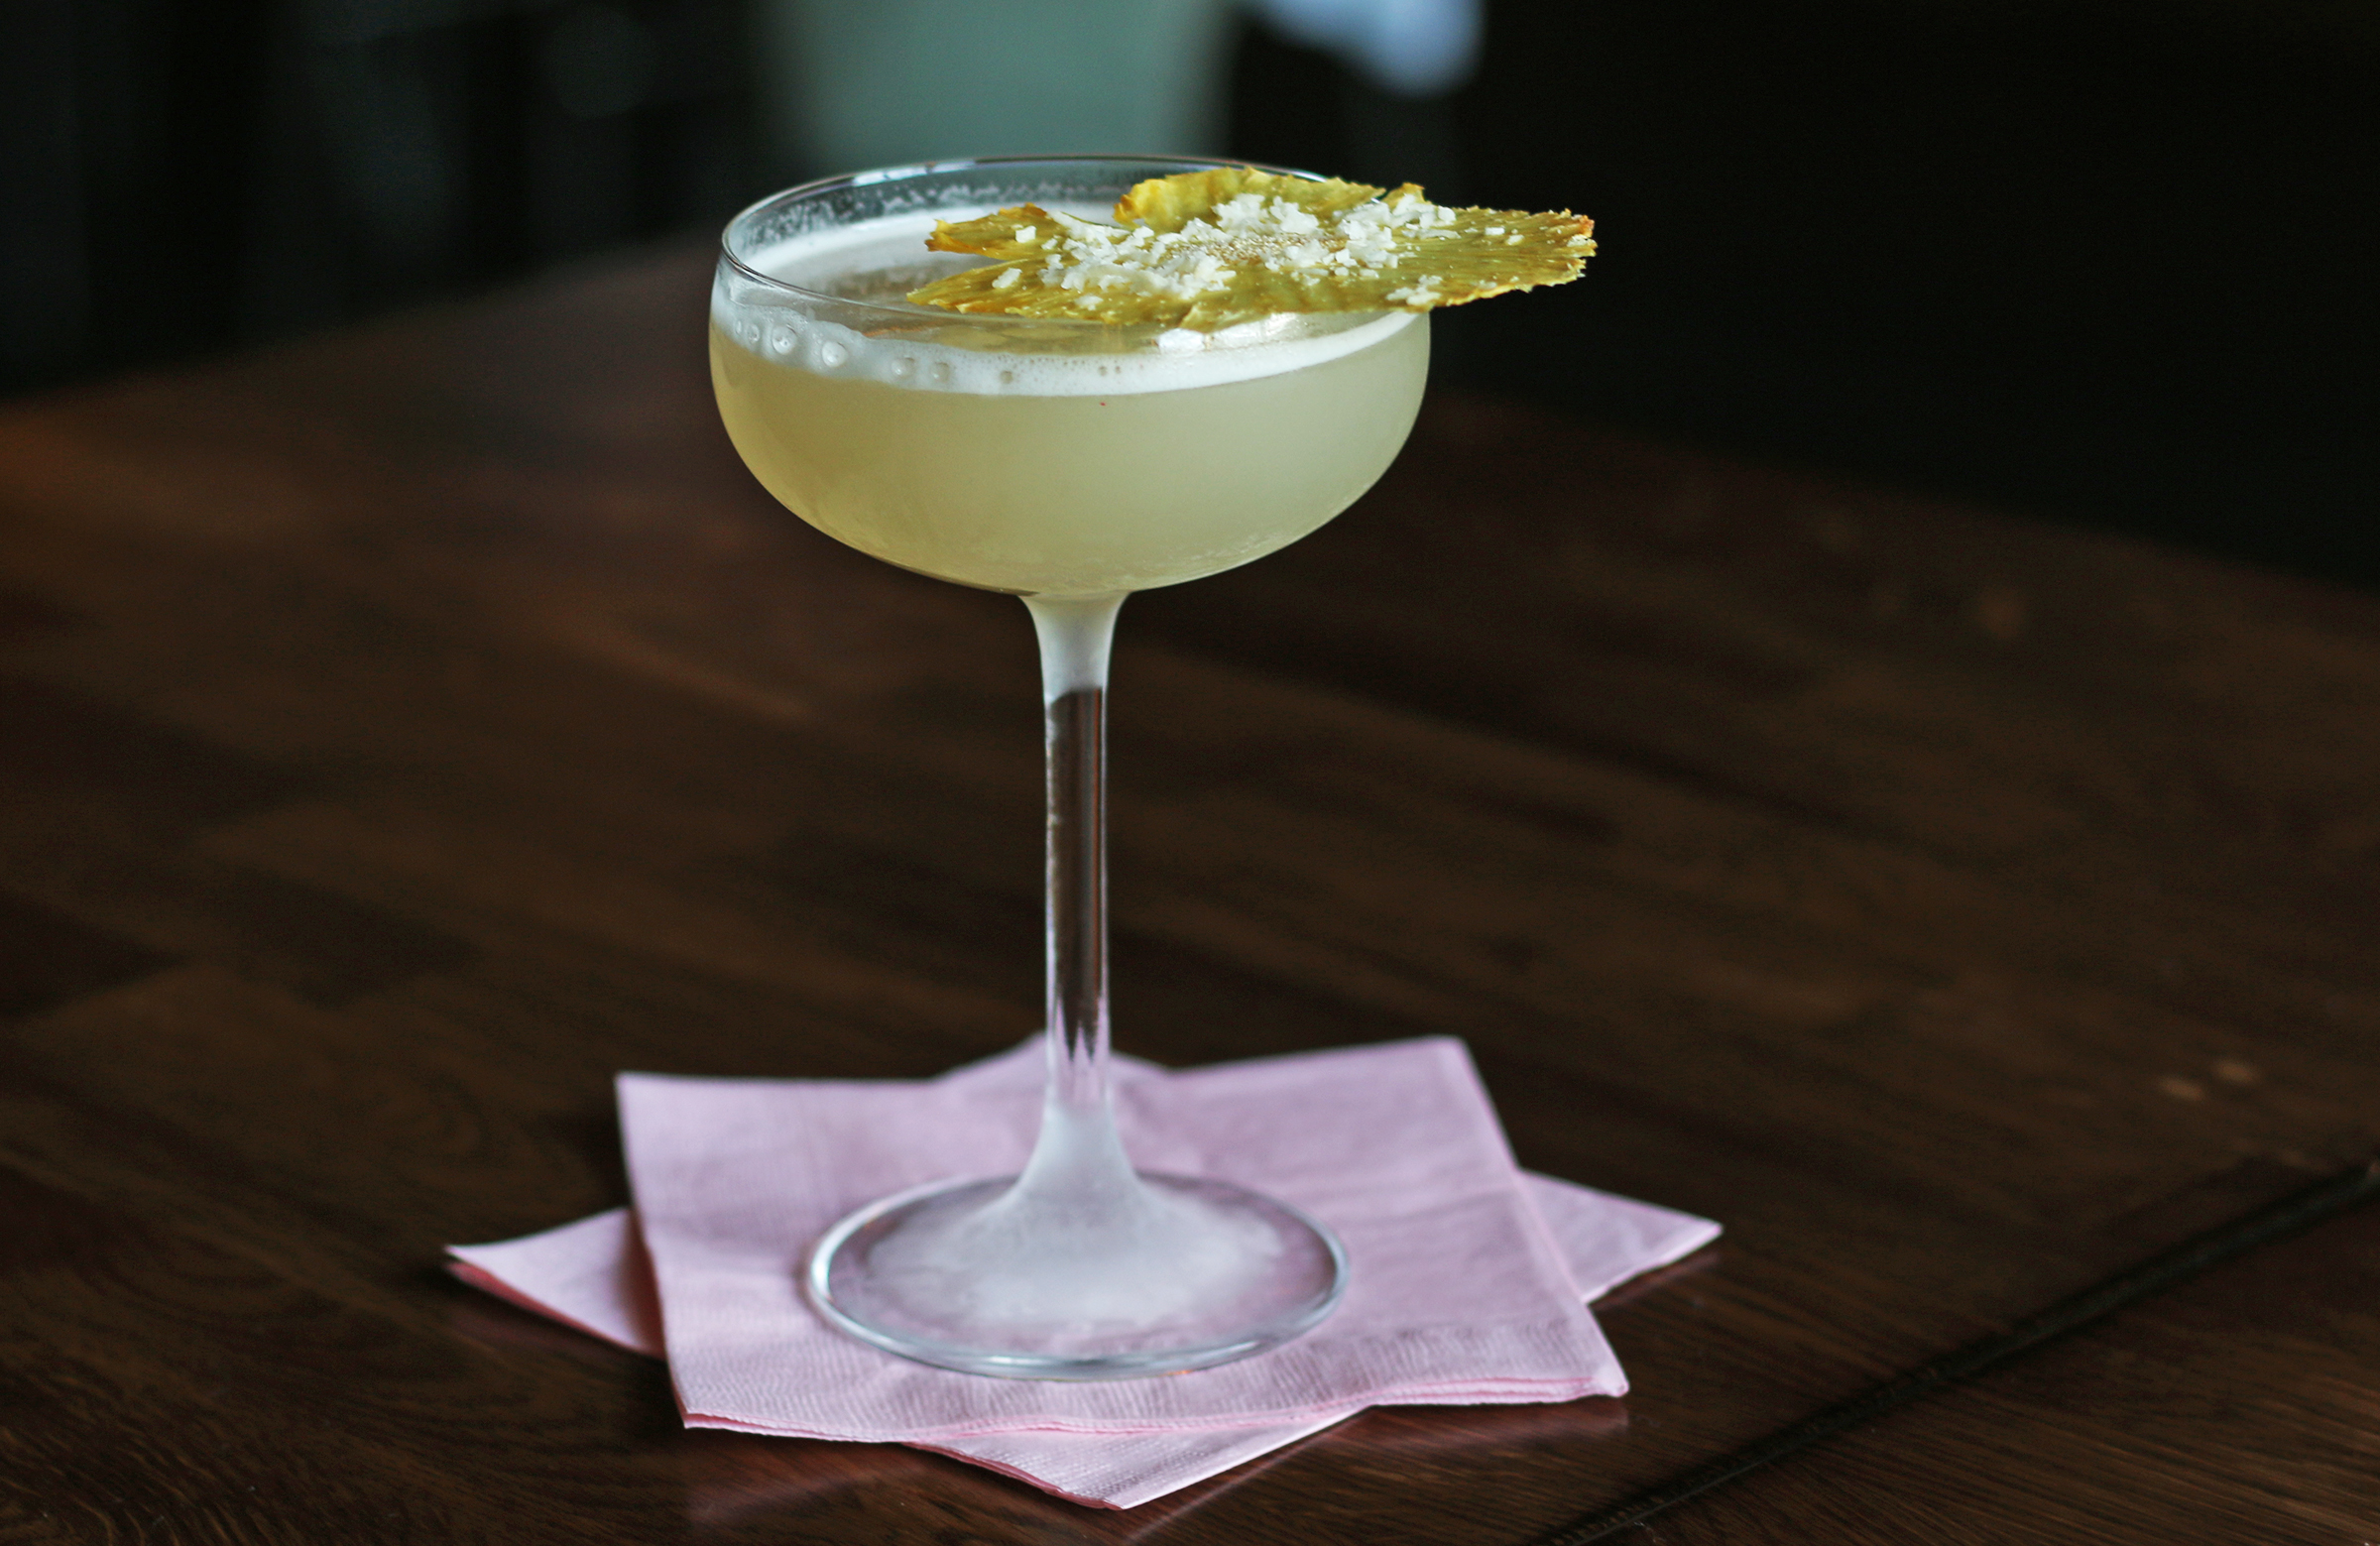 AFTERNOON DELIGHT: Ilegal Mezcal rested for 7 days with fresh cucumber & pineapple, Giffard Banane du Bresil, toasted coconut, lime